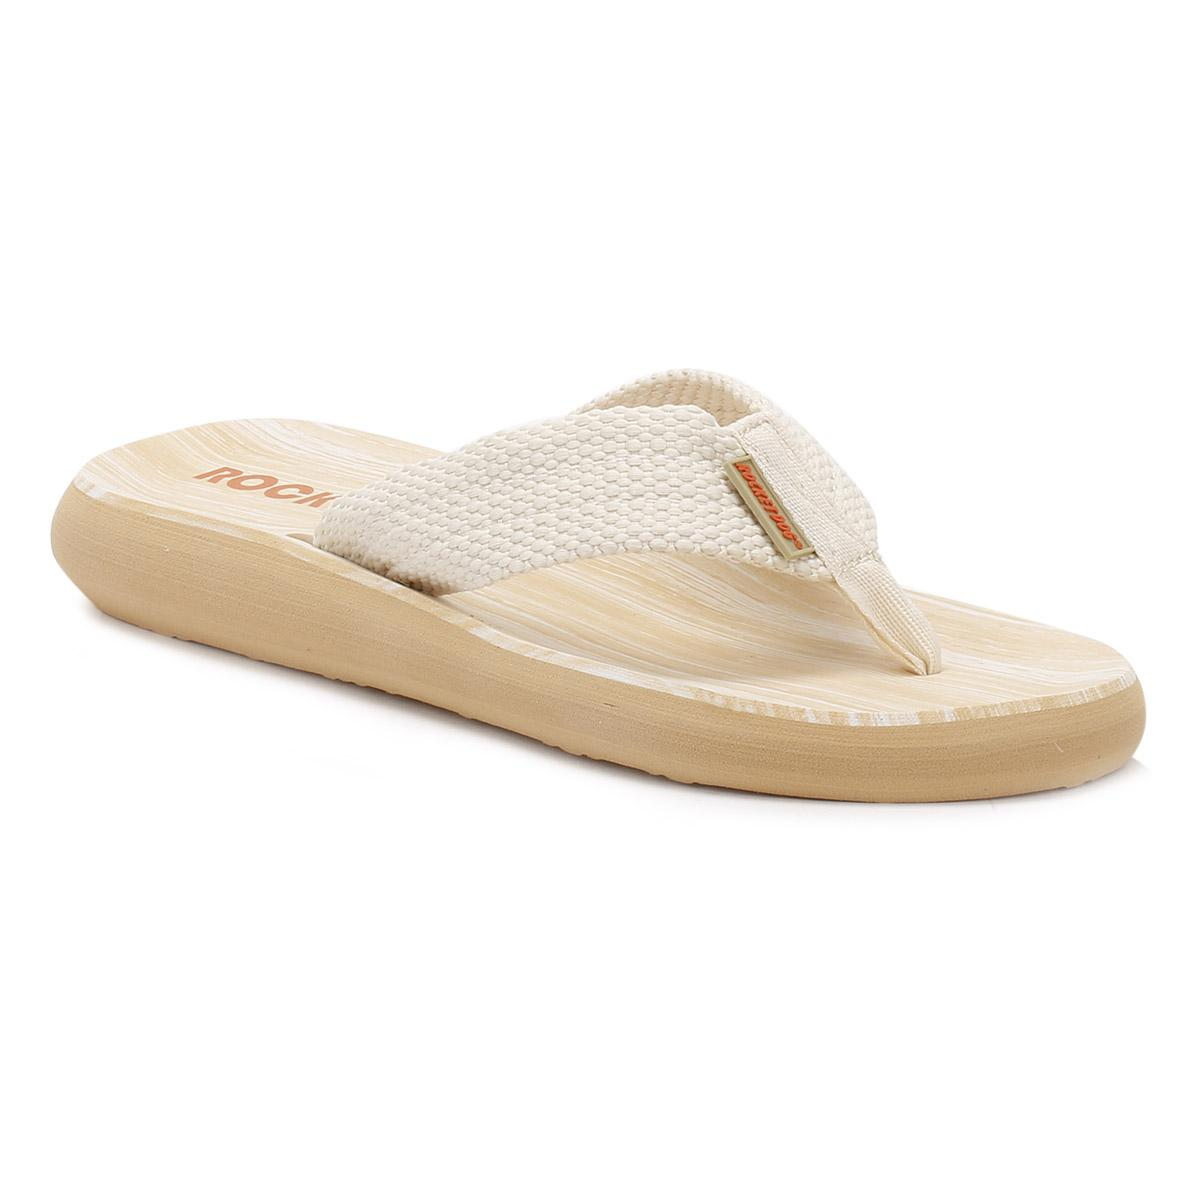 9562bb42e5a289 Rocket Dog Double Cream Sunset Webbing Flip Flops in Natural - Lyst